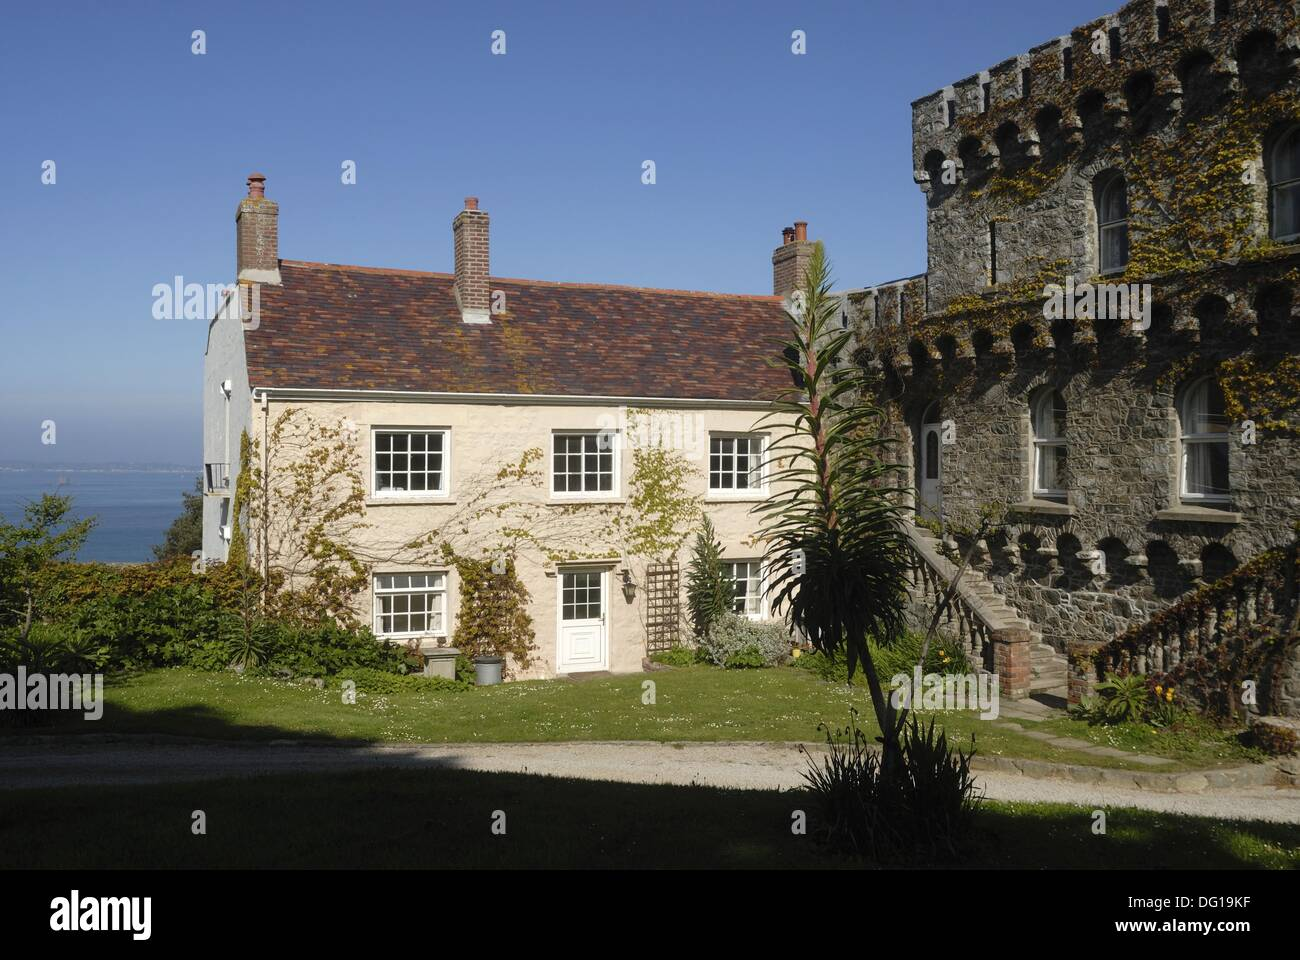 Superior Bailiff´s House, Herm Island, Bailiwick Of Guernsey, British Crown  Dependency, English Channel, Atlantic Ocean, Europe